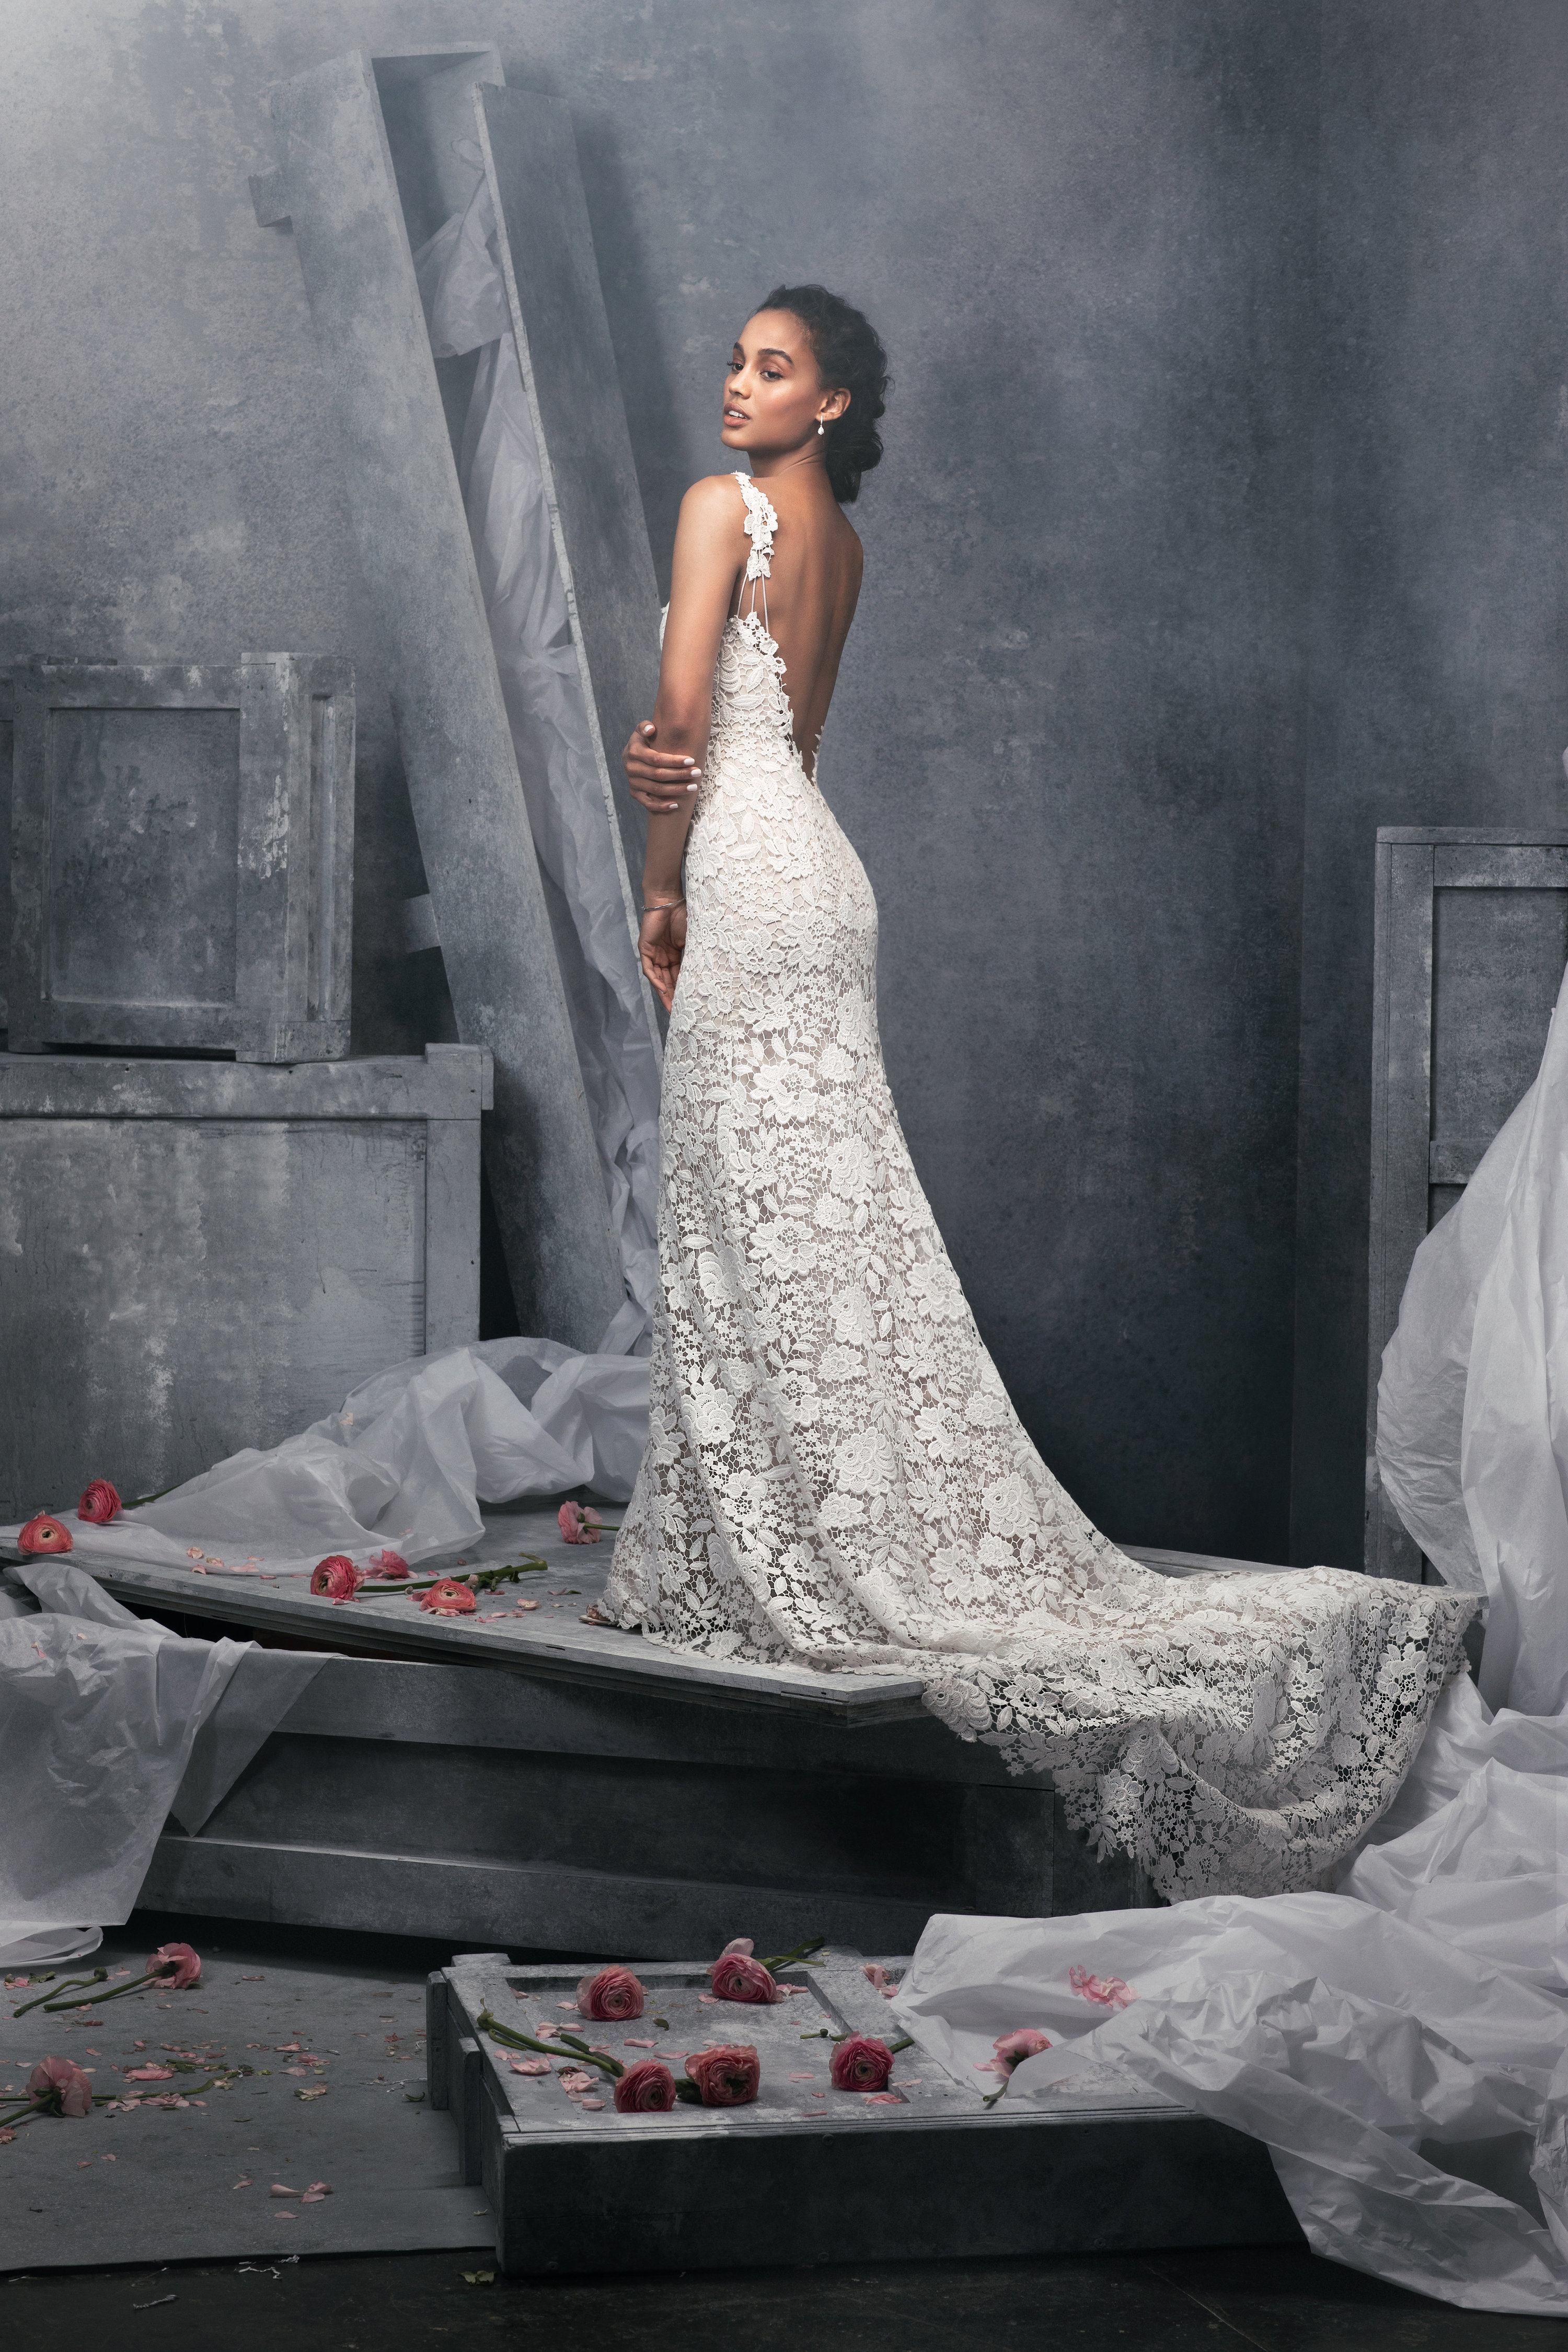 d68580add620 Bridal Gowns and Wedding Dresses by JLM Couture - Style 1910 Atlas